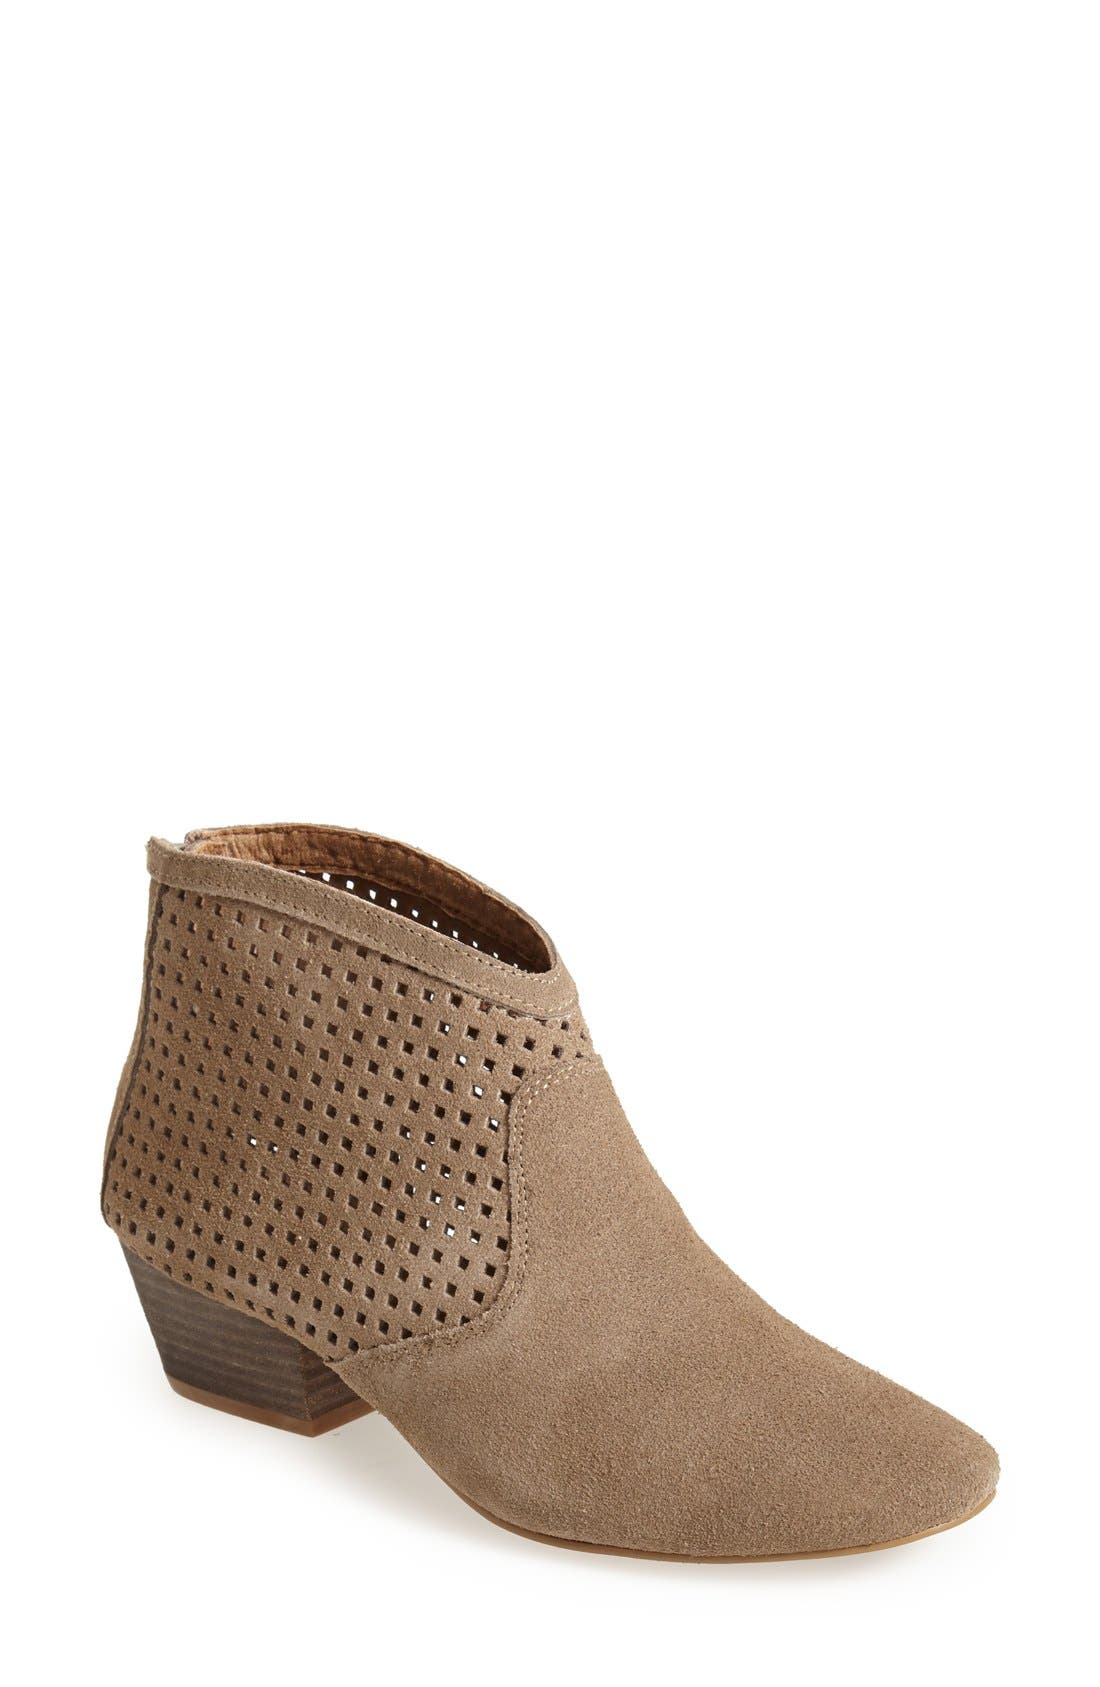 Main Image - SIXTYSEVEN 'Sofia' Perforated Suede Bootie (Women)